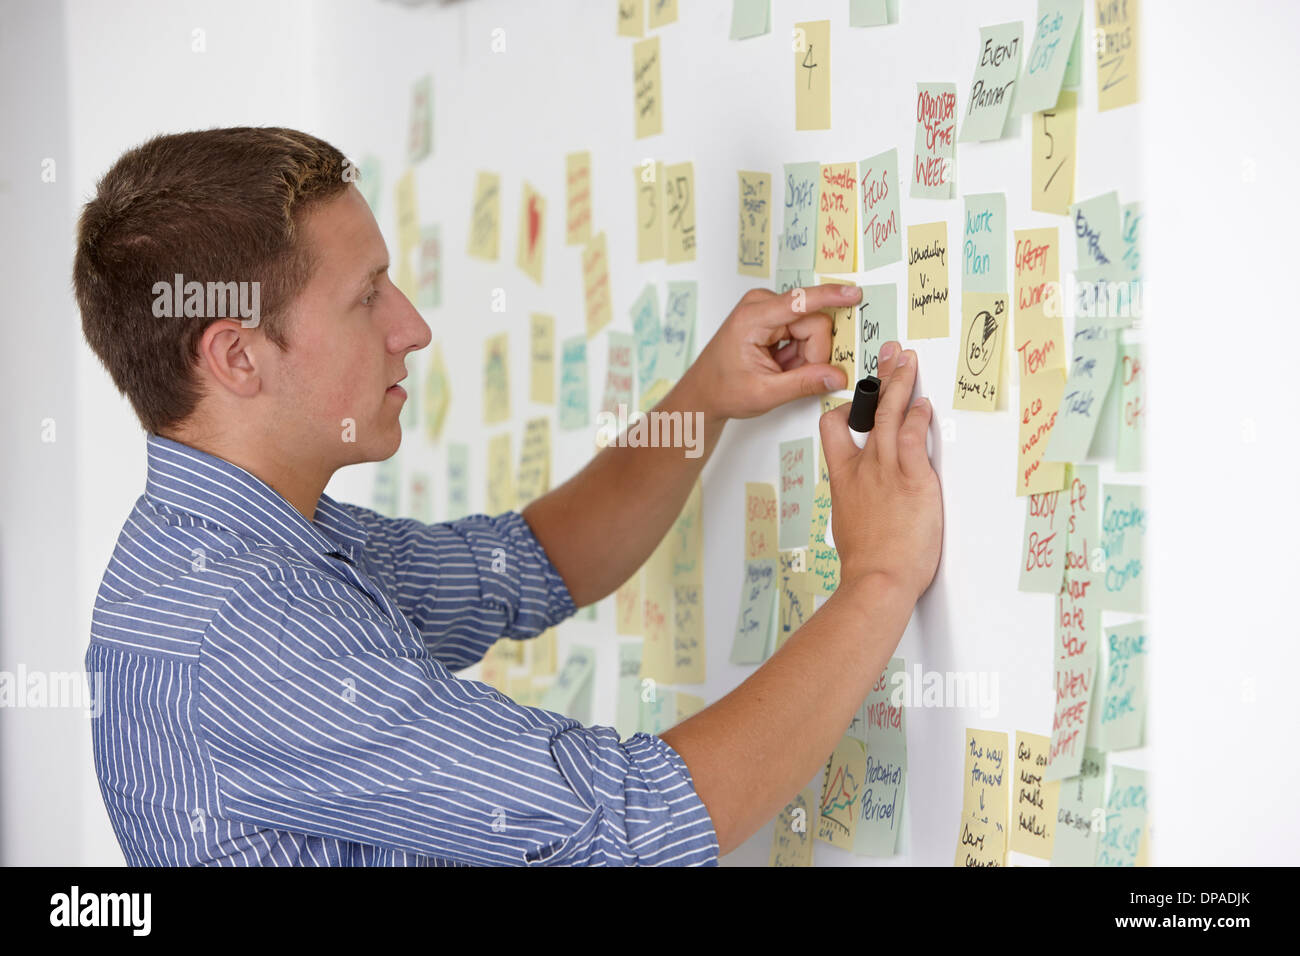 Young man sticking adhesive note on wall - Stock Image